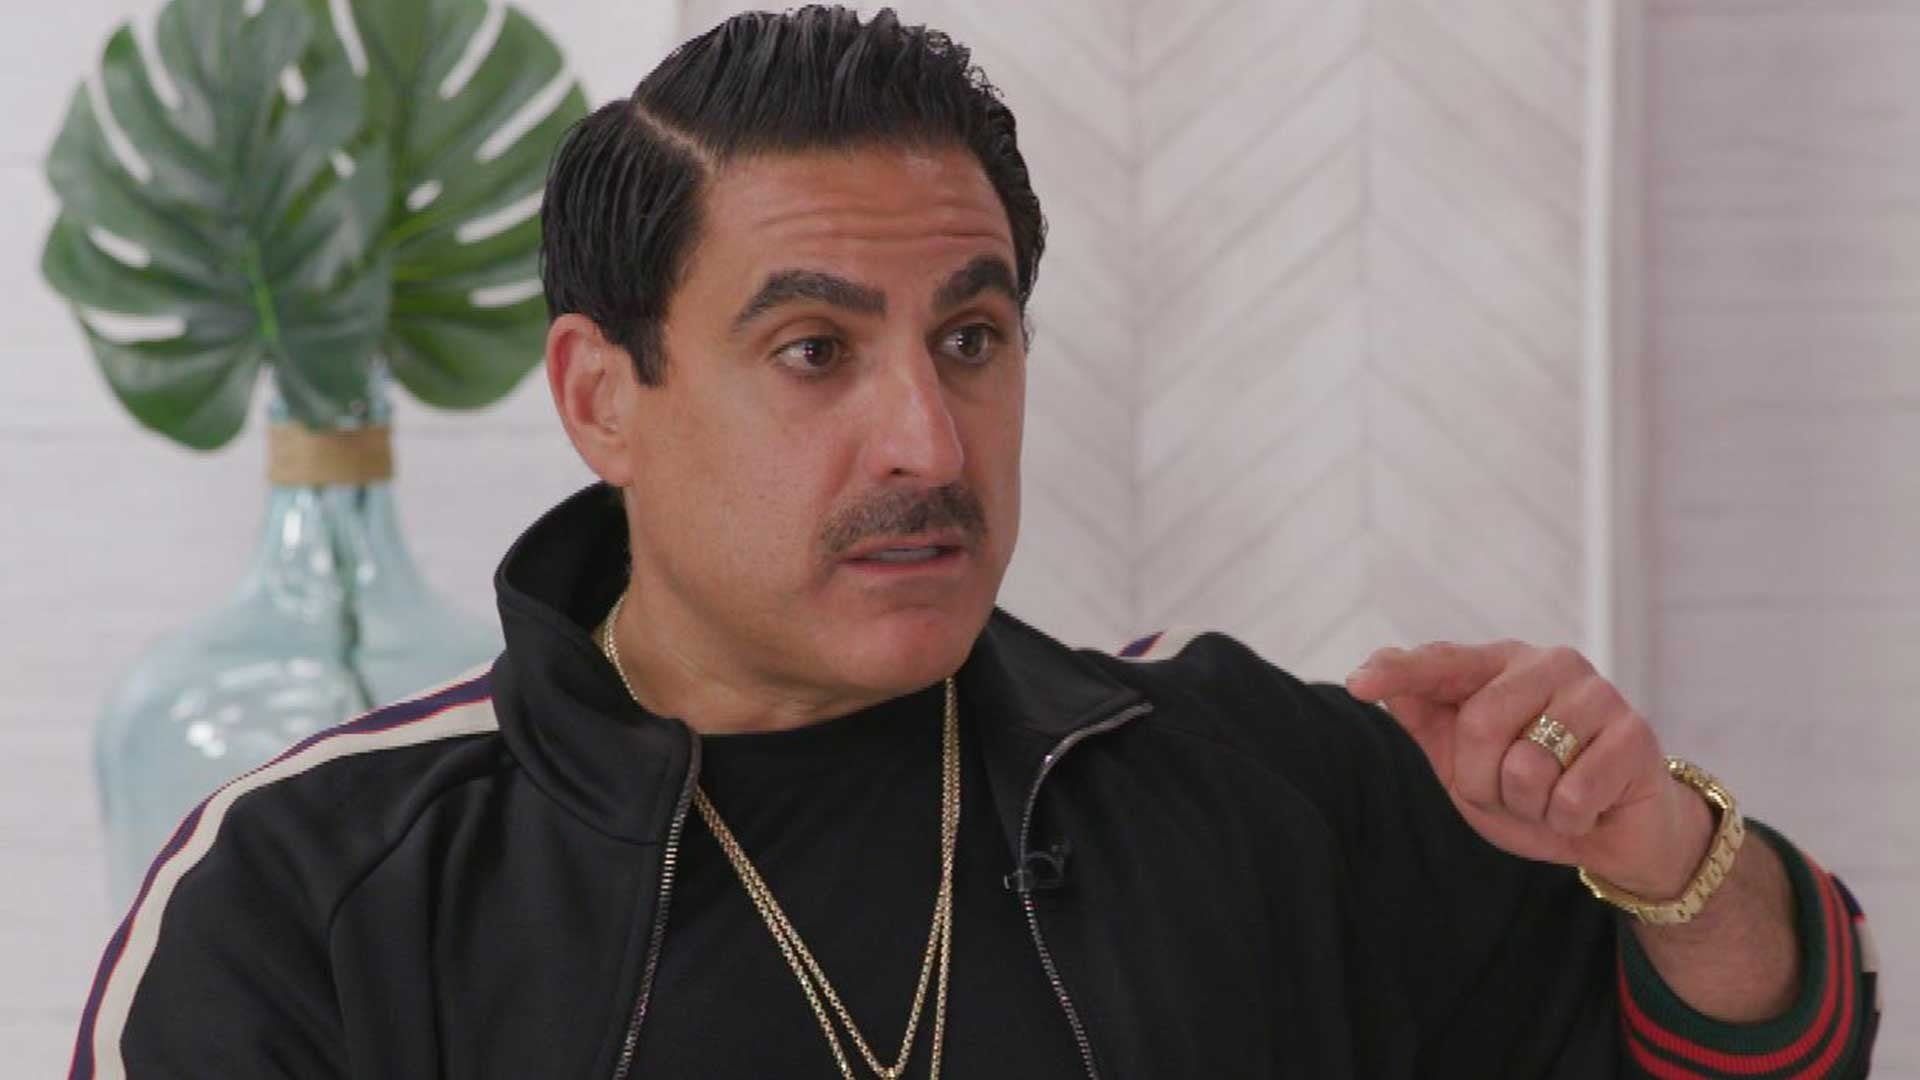 Shahs Of Sunset Reza Farahan Explains His Feud With Mercedes Mj Javid Exclusive Entertainment Tonight